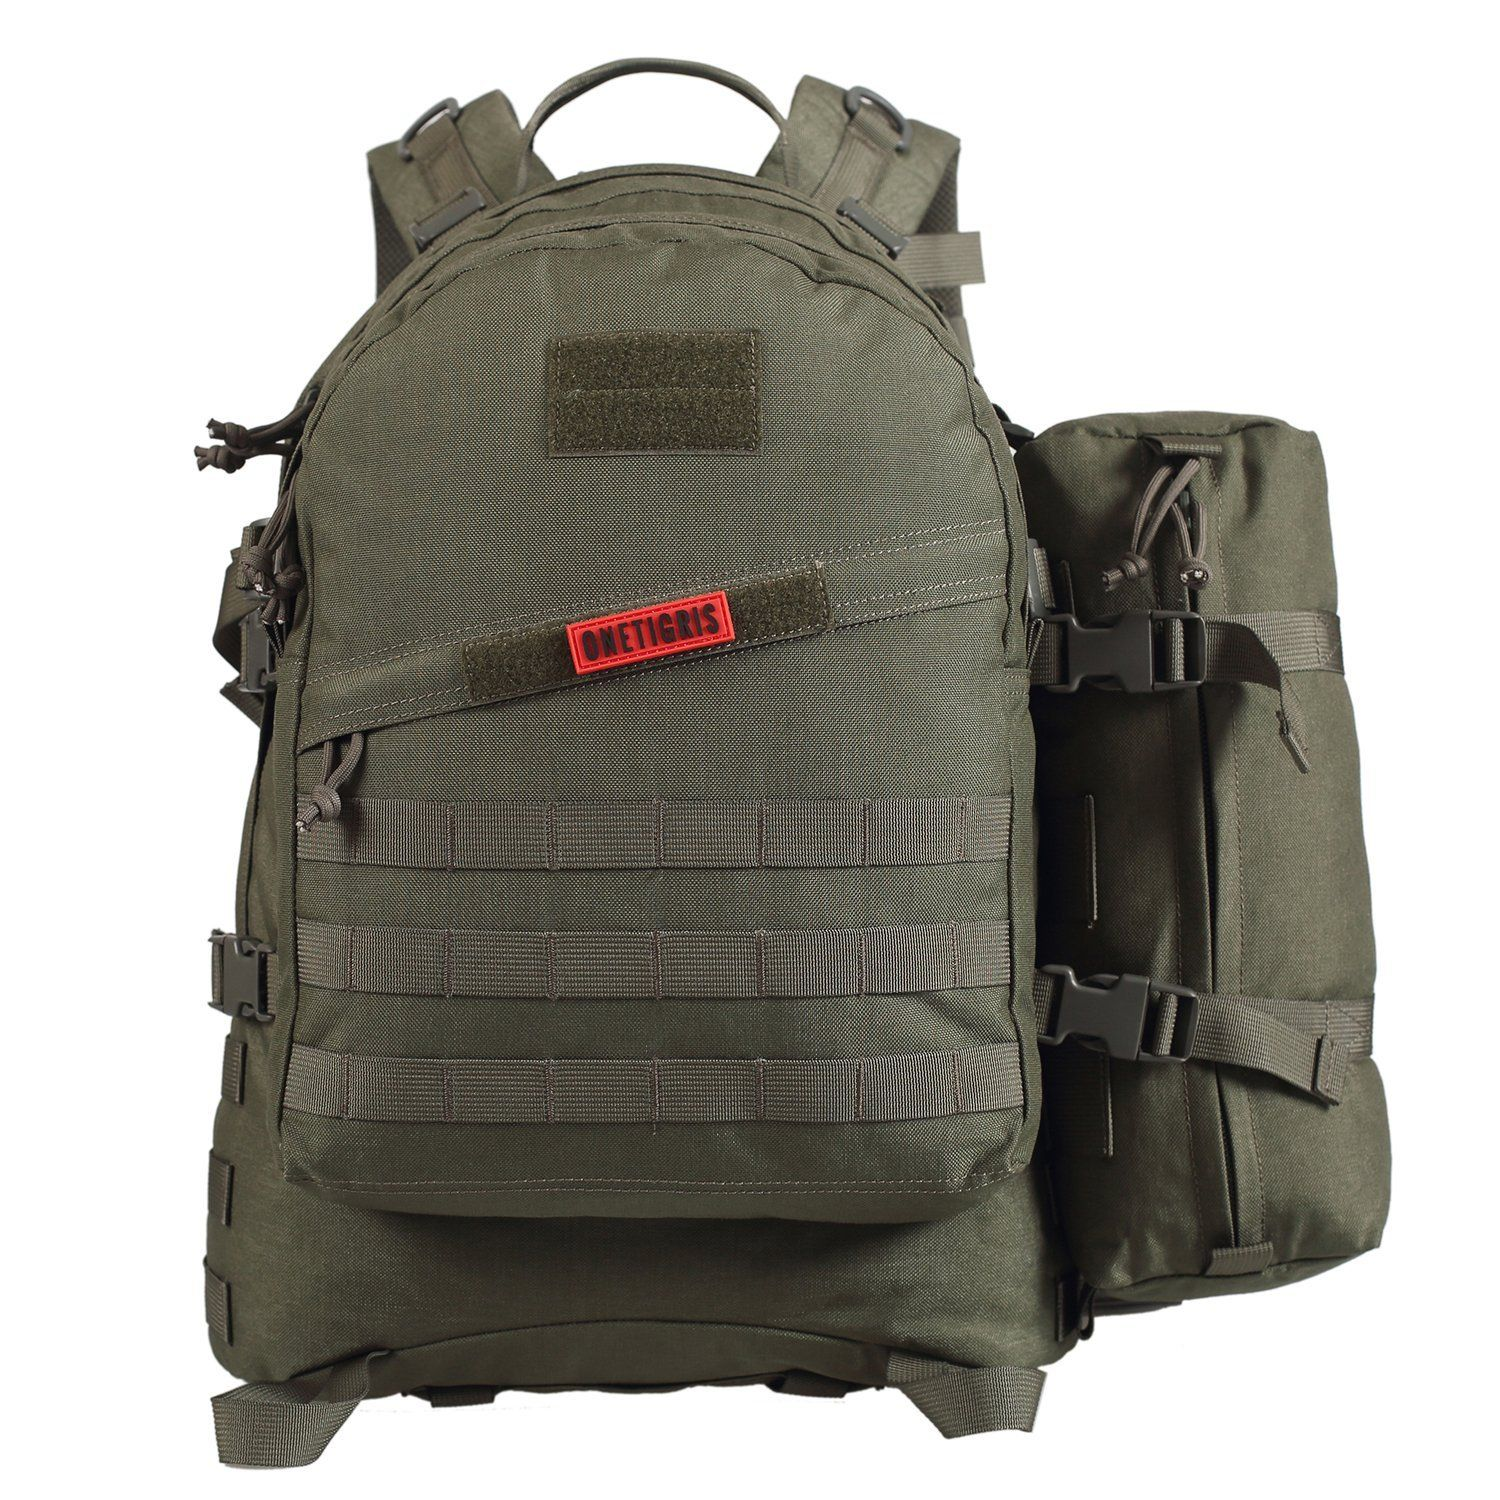 e4eeefc65f OneTigris BUSHCRAFTER 50L 3 Day Pack MOLLE Tactical Military Assault  Backpack Outdoor Sport Camping Hiking Trekking EDC Survival Rucksack     Save this ...